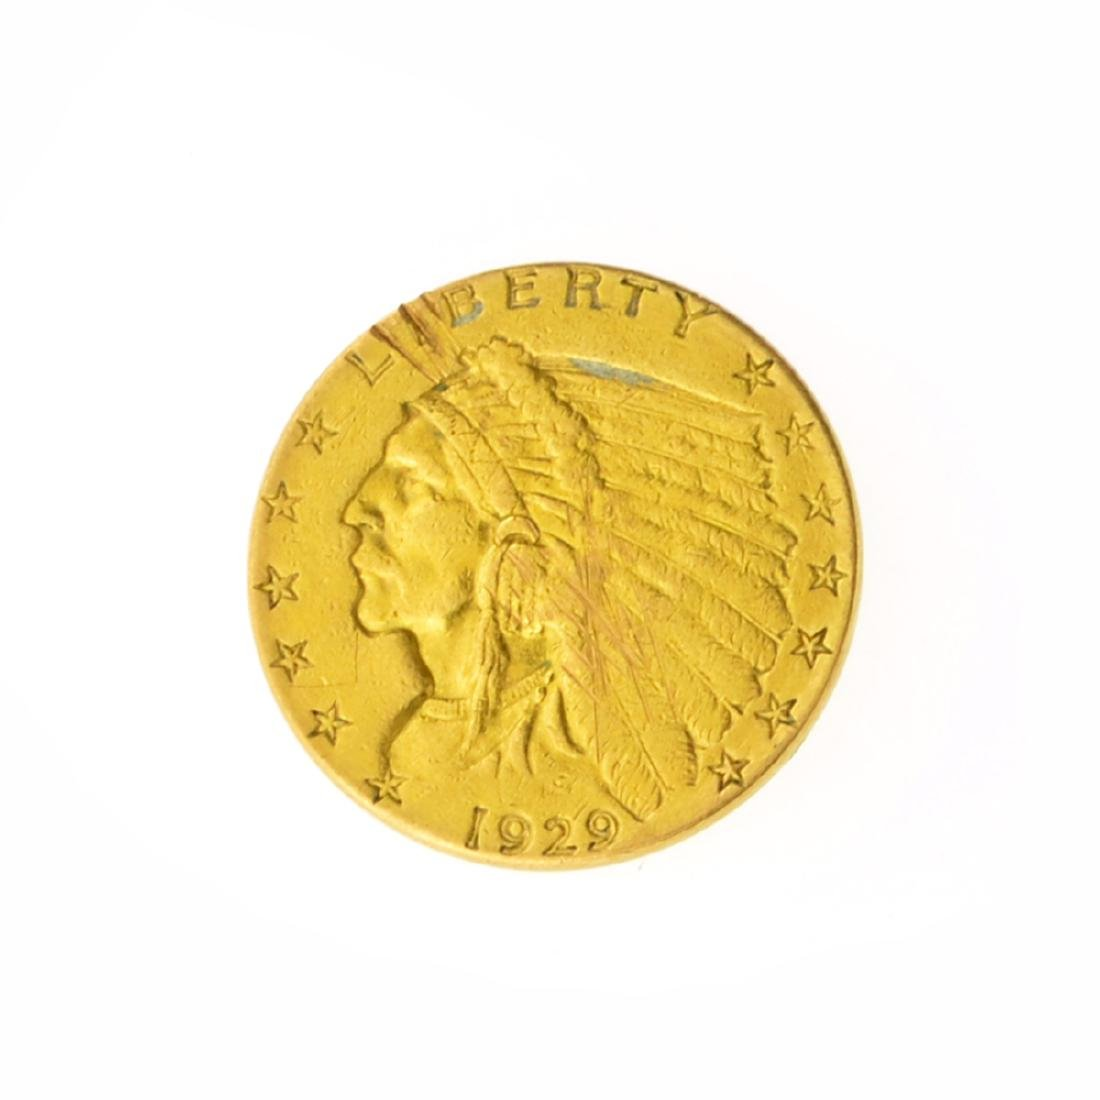 *1929 $2.50 U.S. Indian Head Gold Coin (JG)